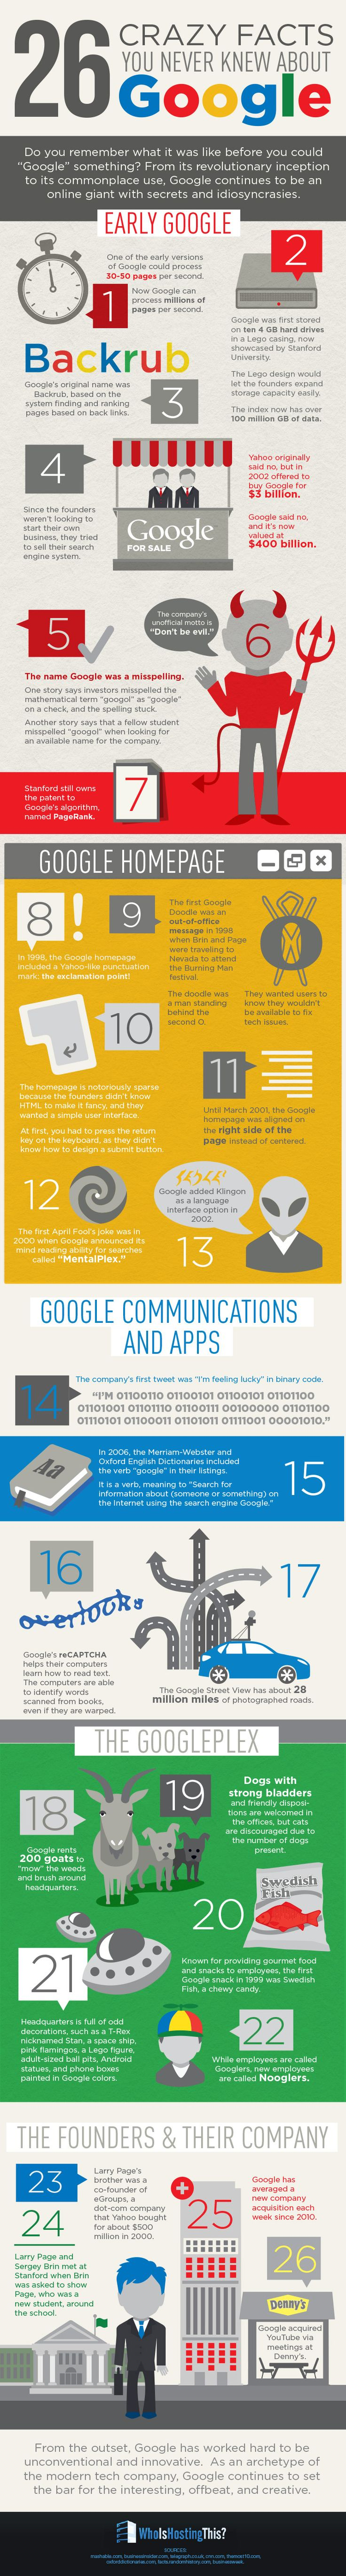 26 Crazy Facts you never knew about Google #infographic  Want more business from social media? zackswimsmm.tk